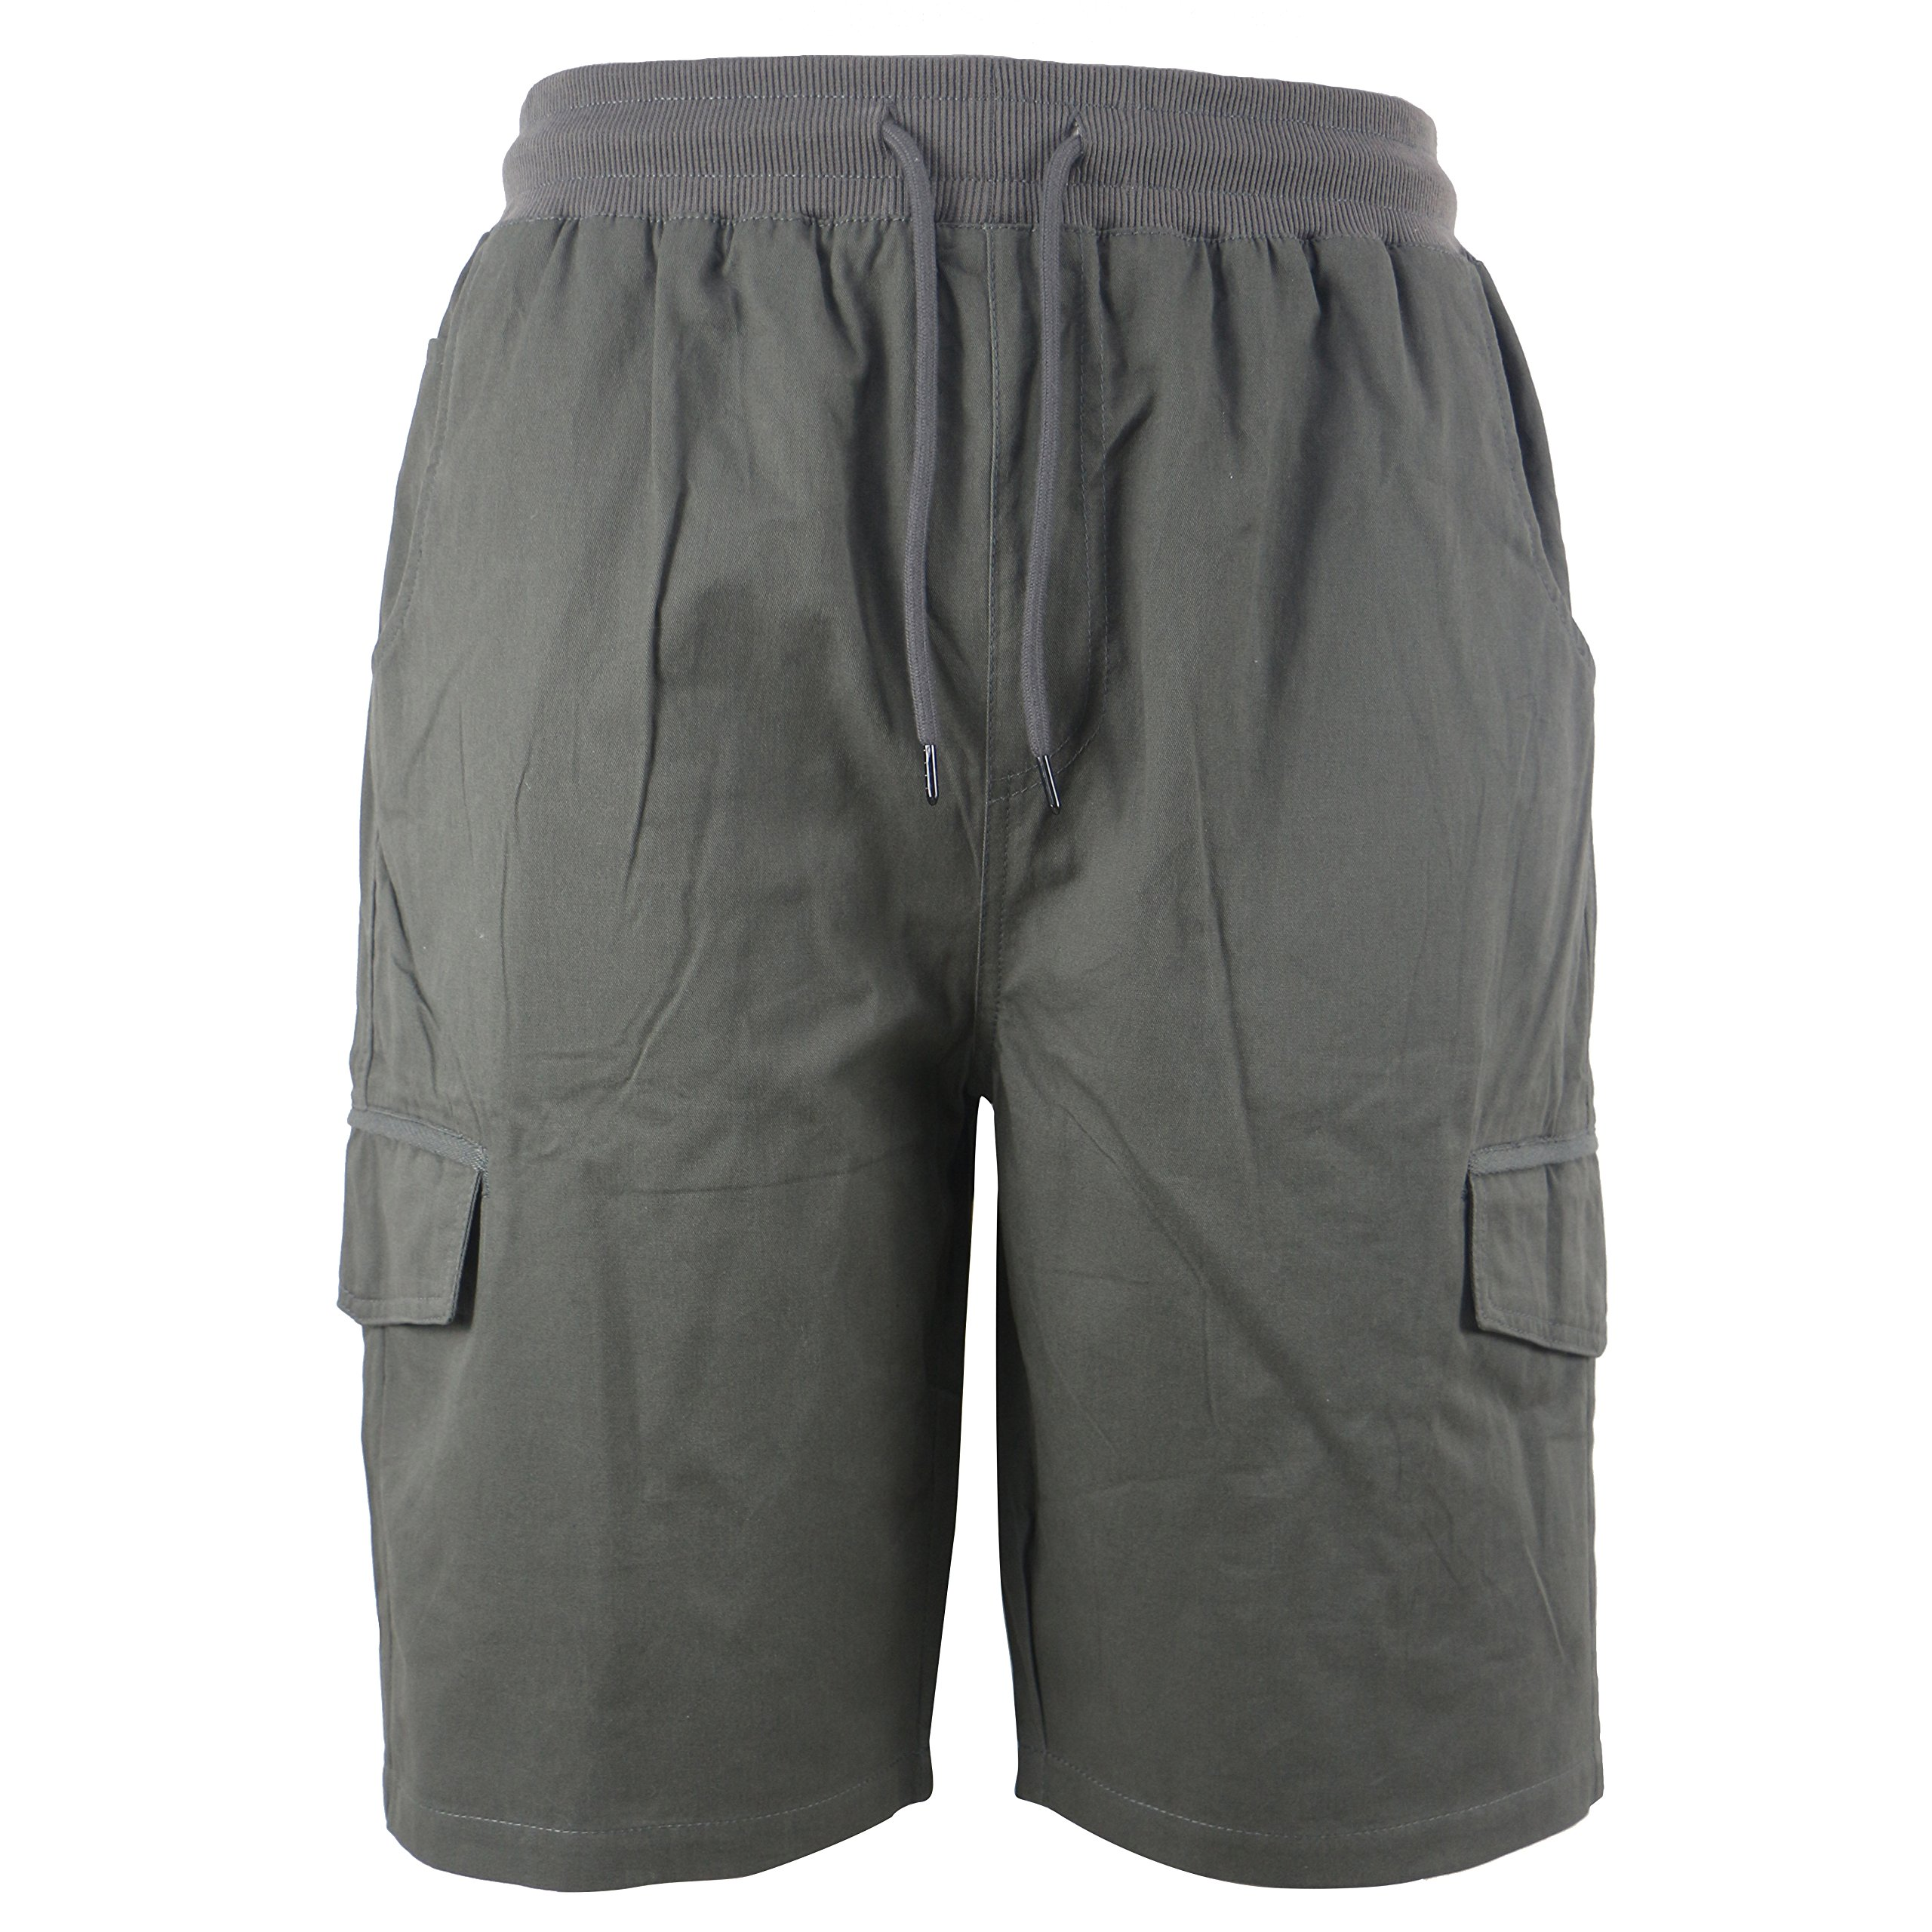 Tanbridge Men's Cotton Cargo Shorts with Pockets Loose Fit Outdoor Wear Twill Elastic Waist Shorts Grey 34